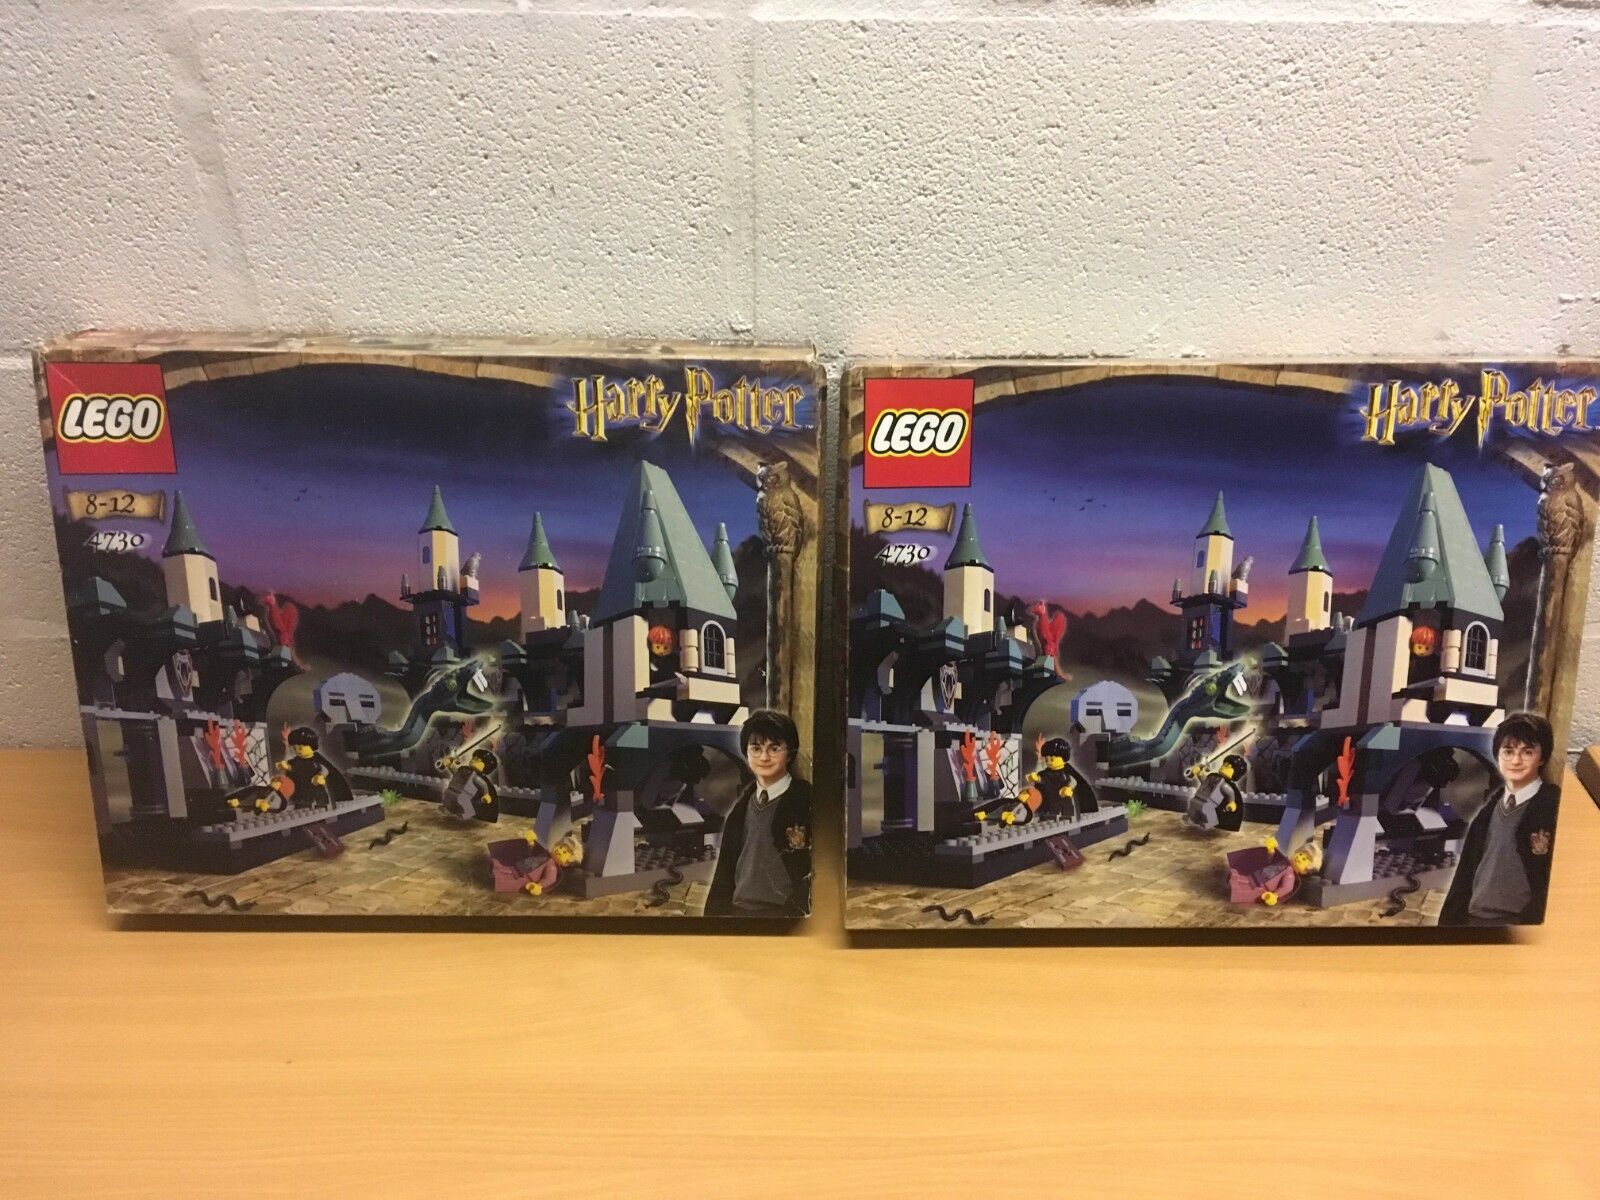 LEGO HARRY POTTER 4730 NEW SEALED THE CHAMBER OF SECRETS